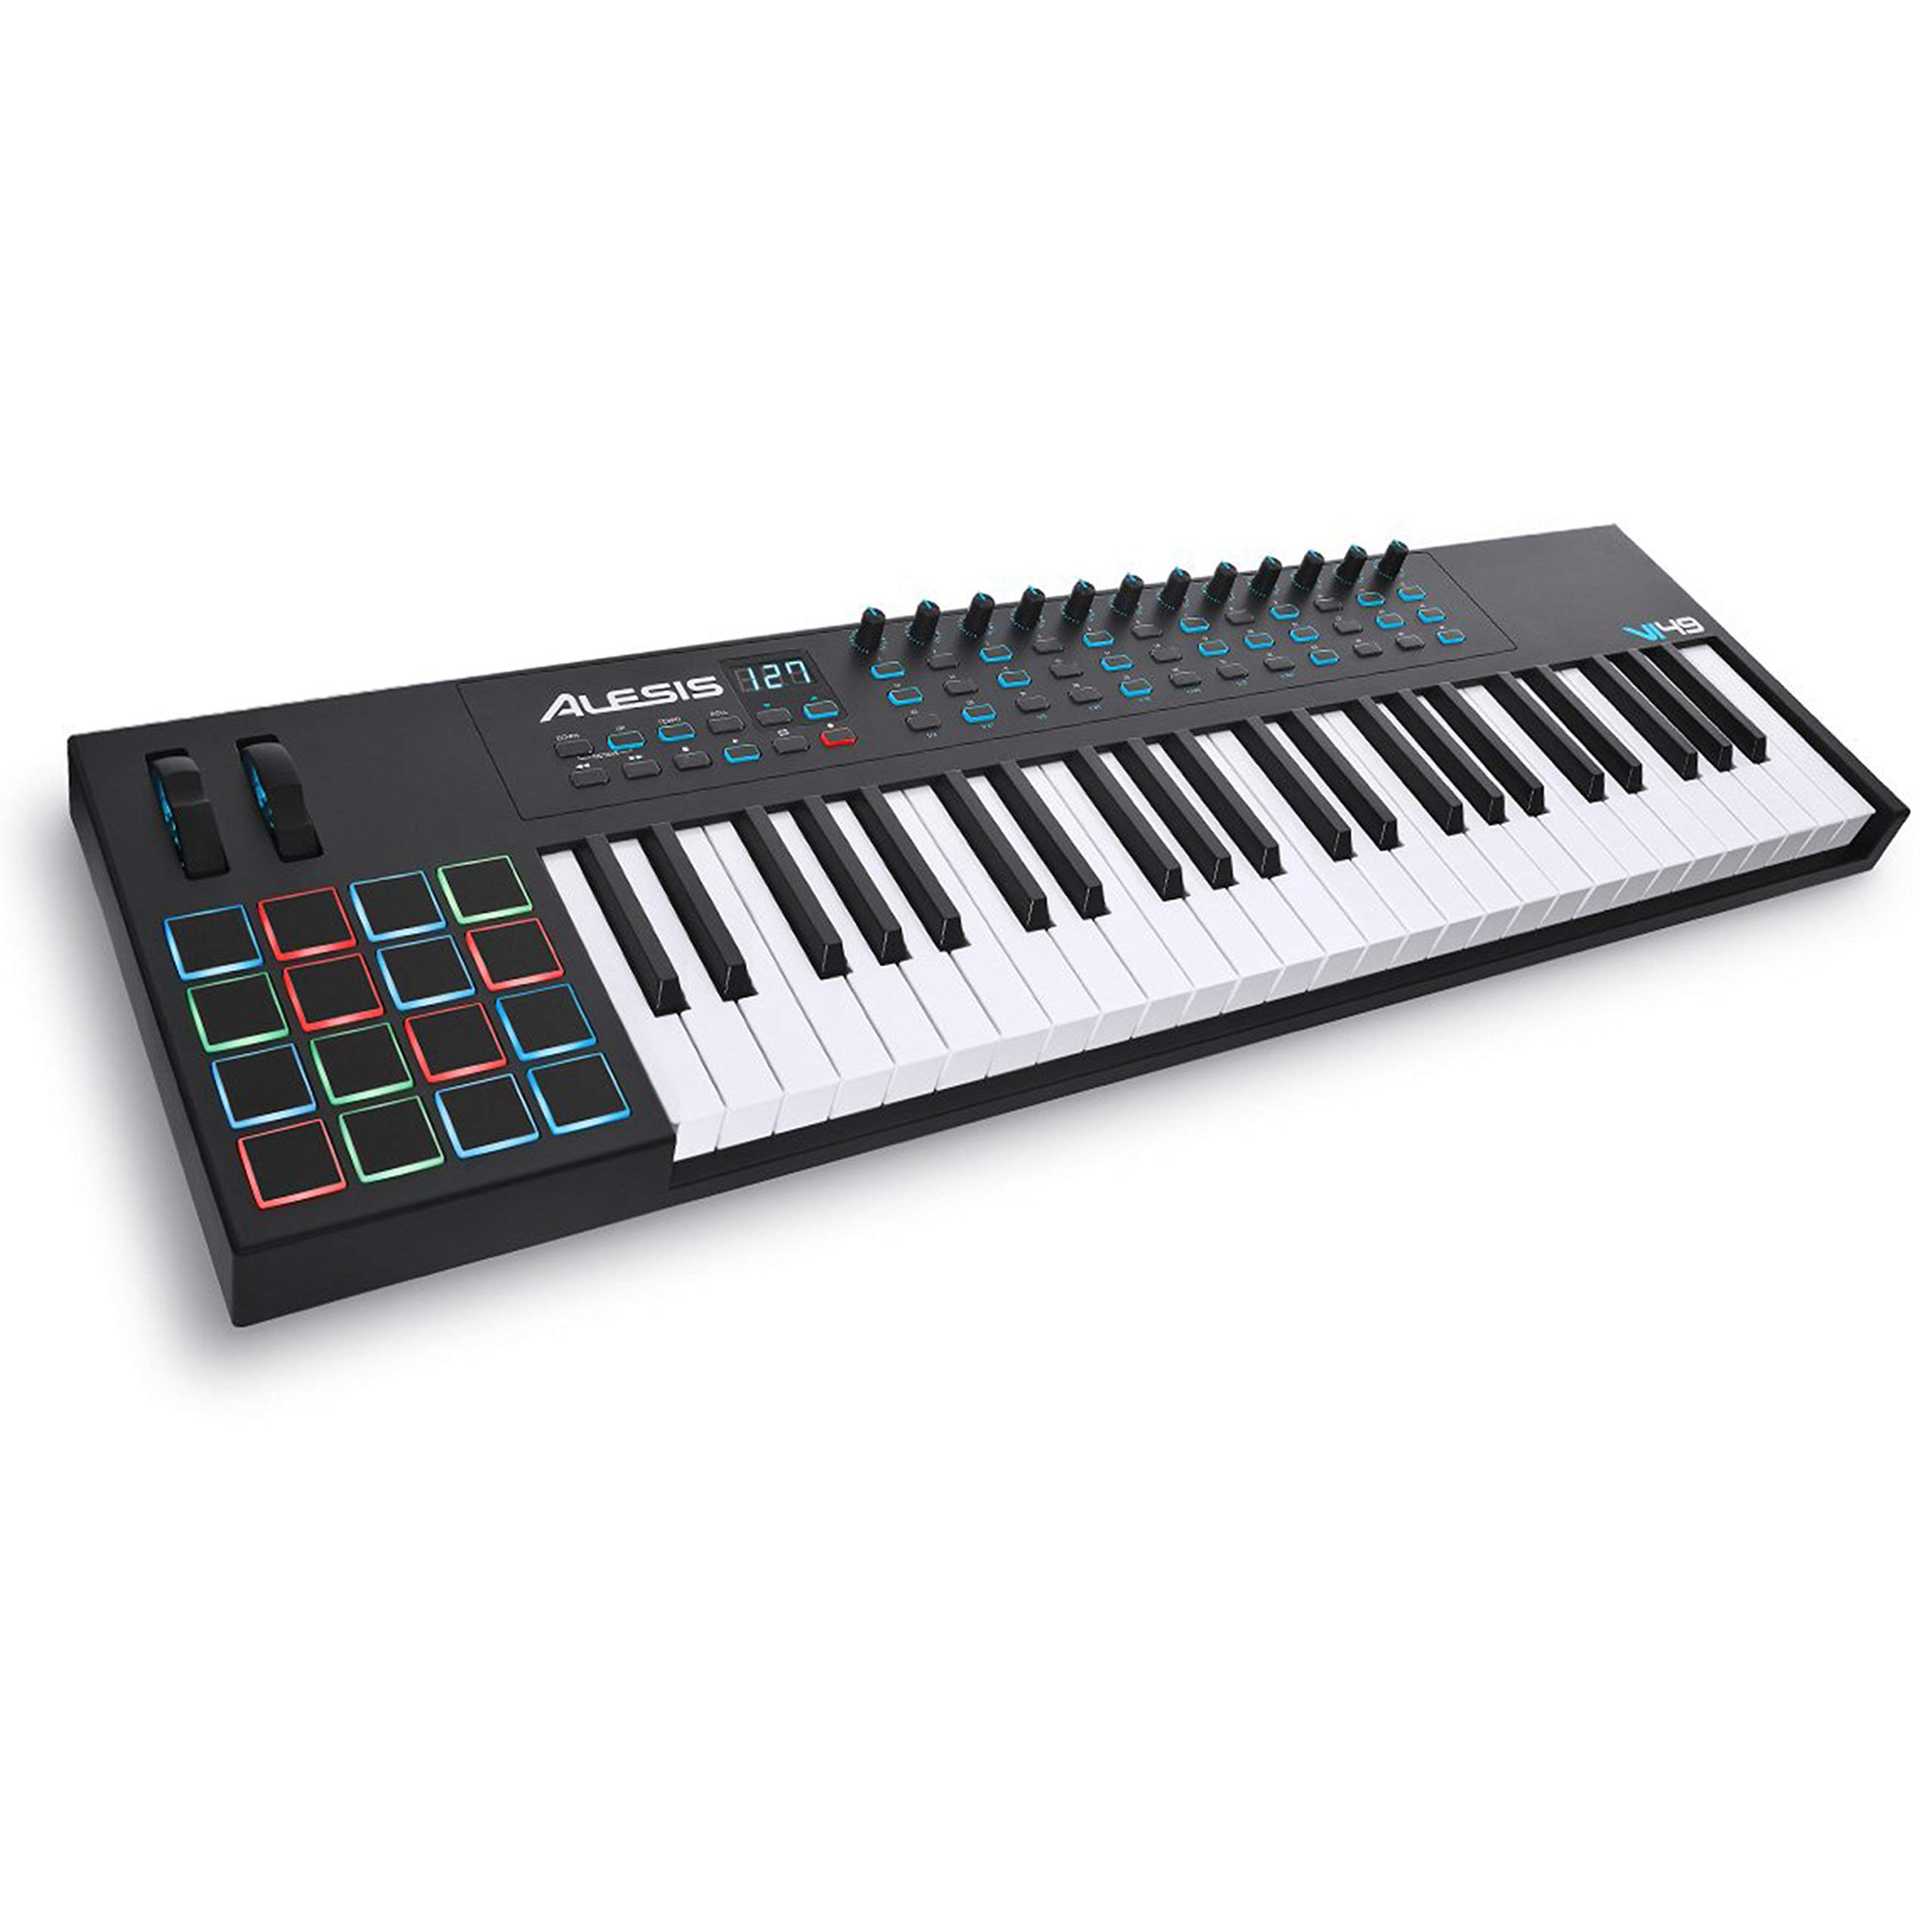 Alesis VI49 | 49-Key USB MIDI Keyboard Controller with 16 Pads, 16 Assignable Knobs, 48 Buttons and 5-Pin MIDI Out Plus Production Software Included by Alesis